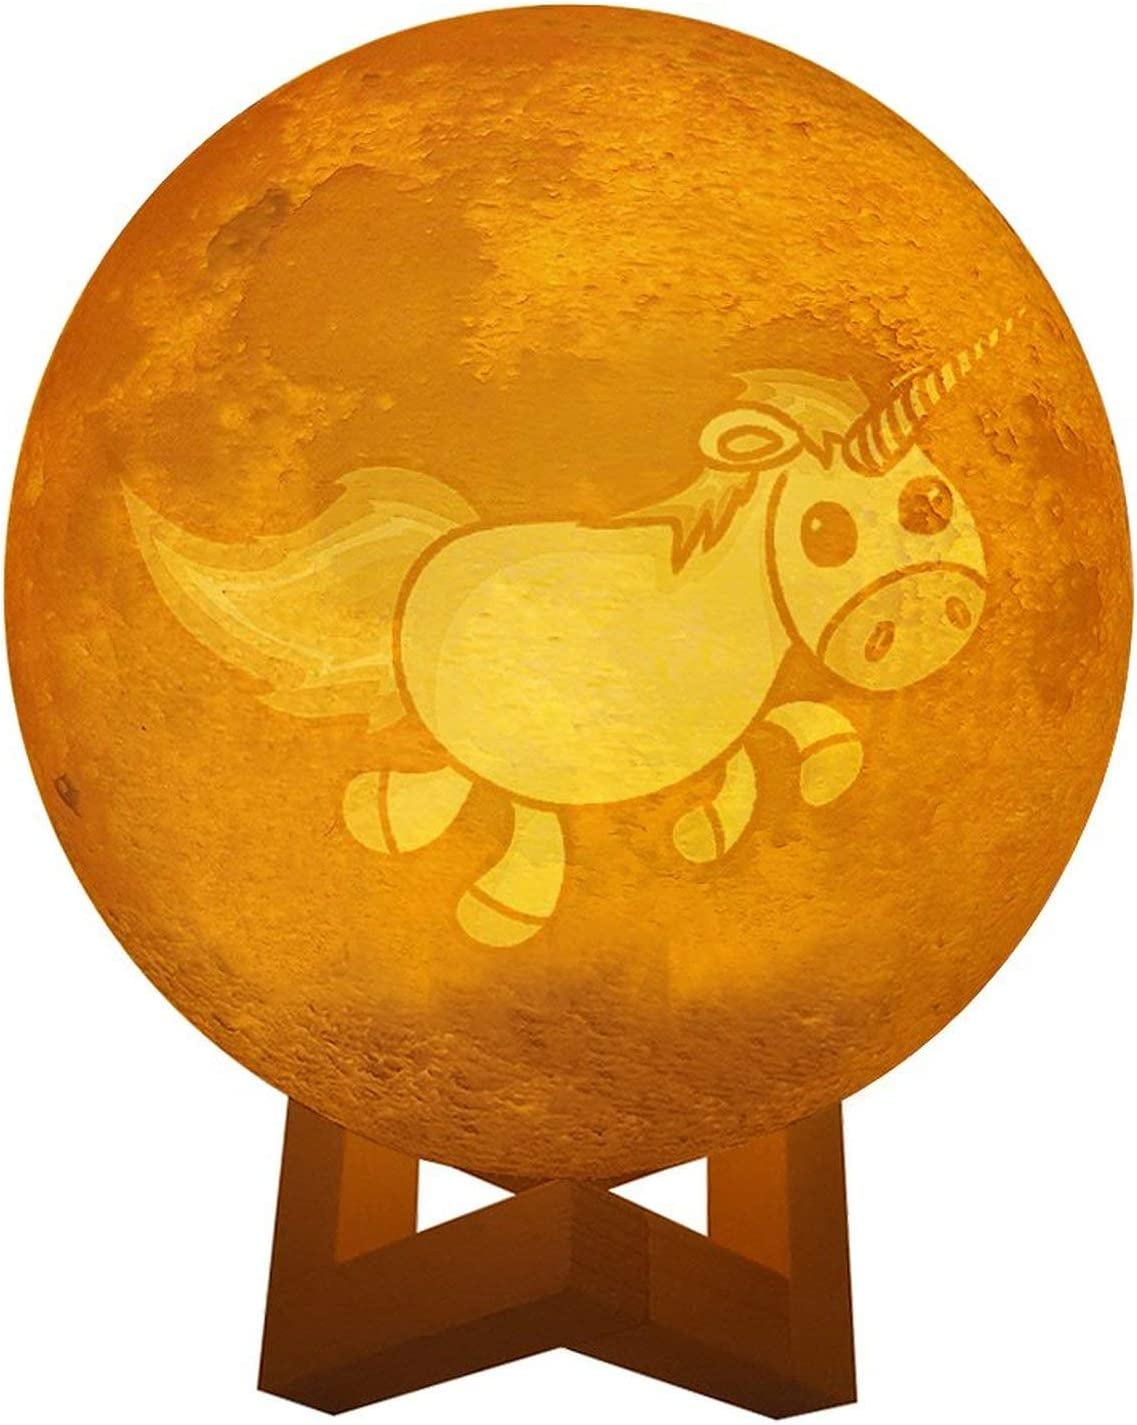 Animer and price revision Unicorn 2 3D Printed Moon Light Lamp 3 Ranking TOP5 Selectable Dimmable Color